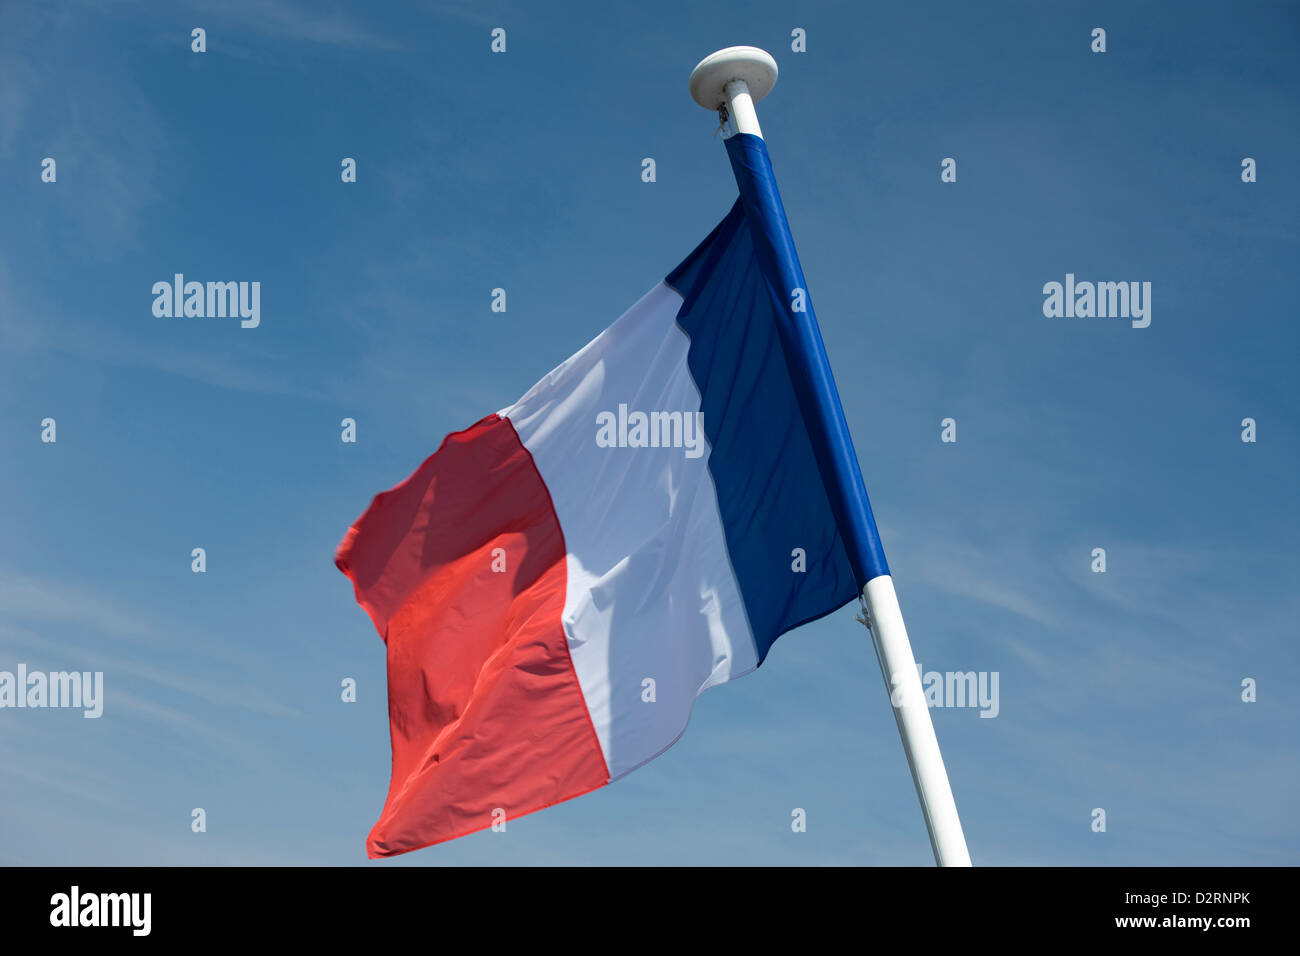 FRENCH FLAG FLYING ON FLAGPOLE - Stock Image